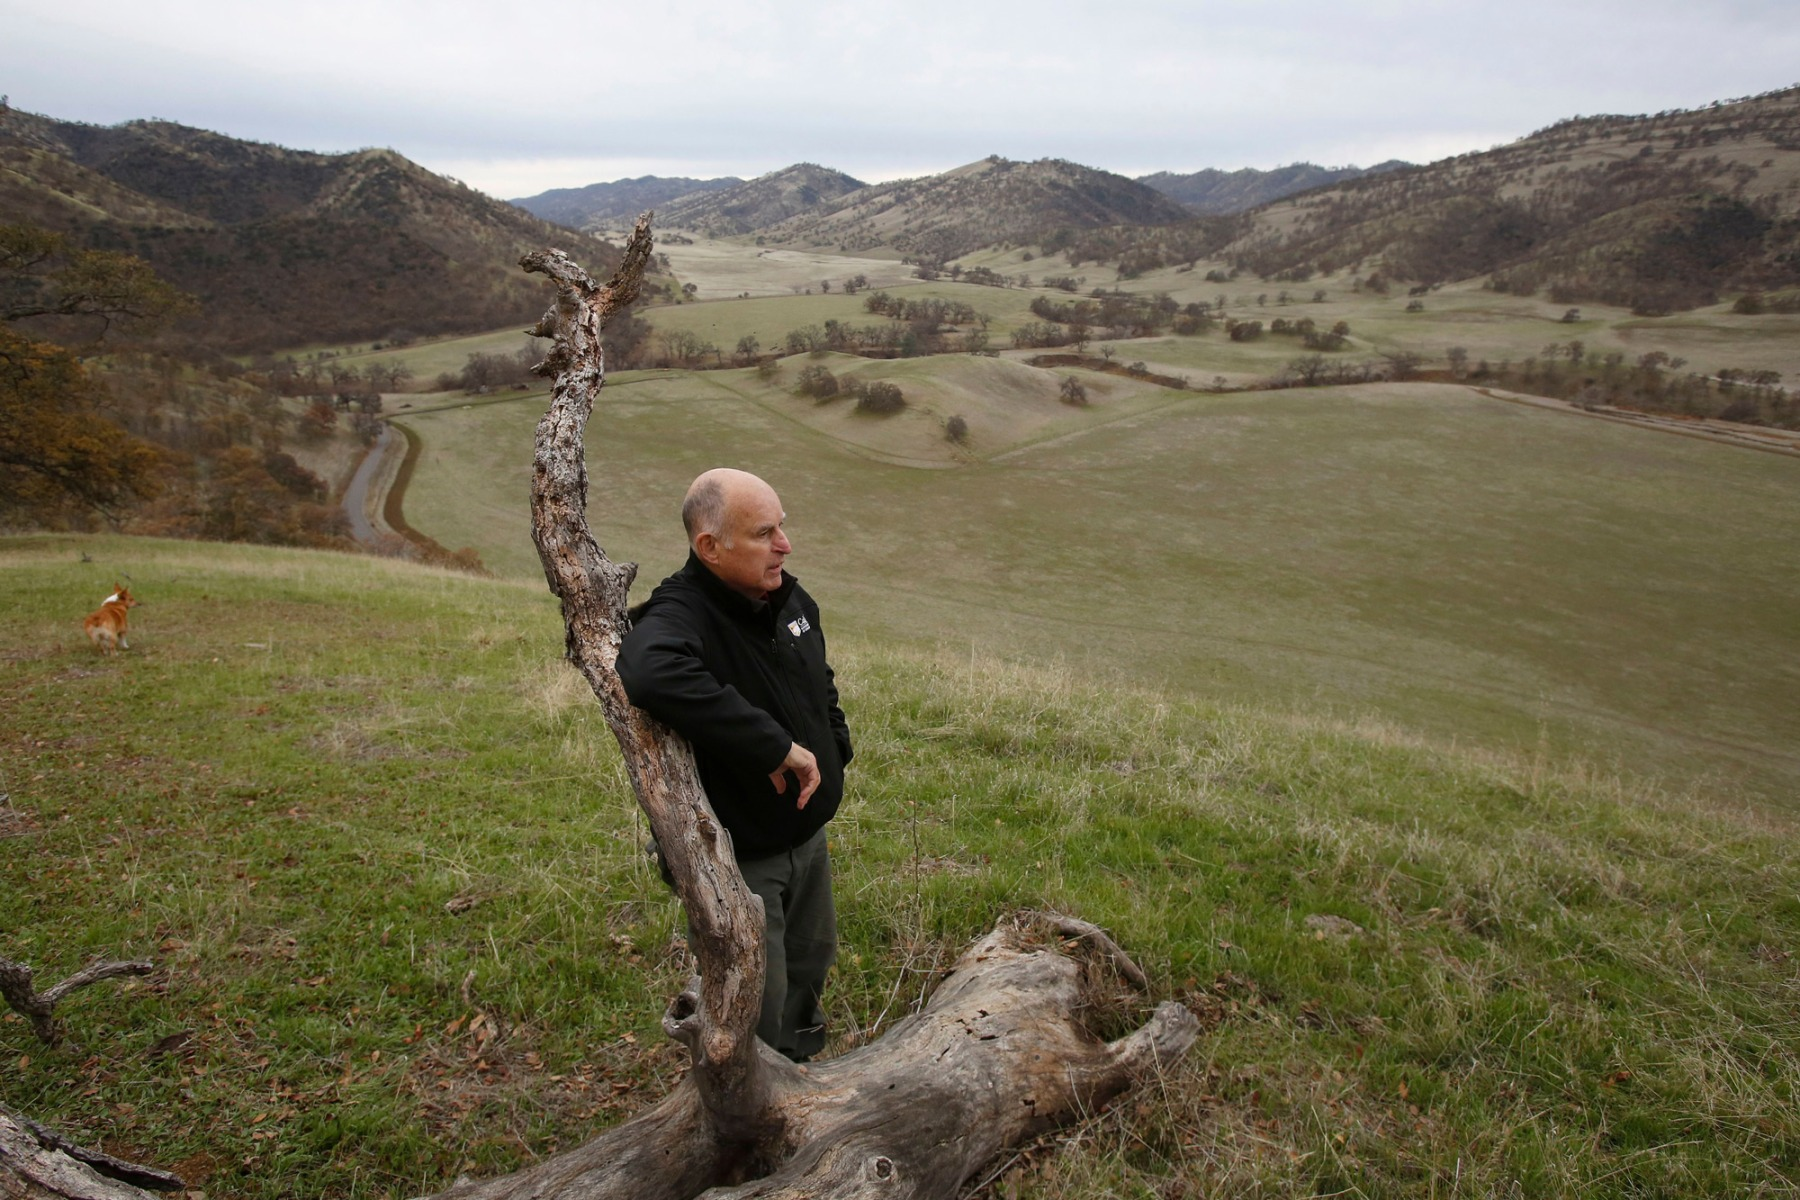 Gov. Jerry Brown views his Colusa County ranch, near Williams, Calif. Brown will retire to the ranch when he leaves office Jan. 7, 2019, after a record four terms in office, from 1975-1983 and again since 2011Jerry Brown Departs, Williams, USA - 22 Dec 2018